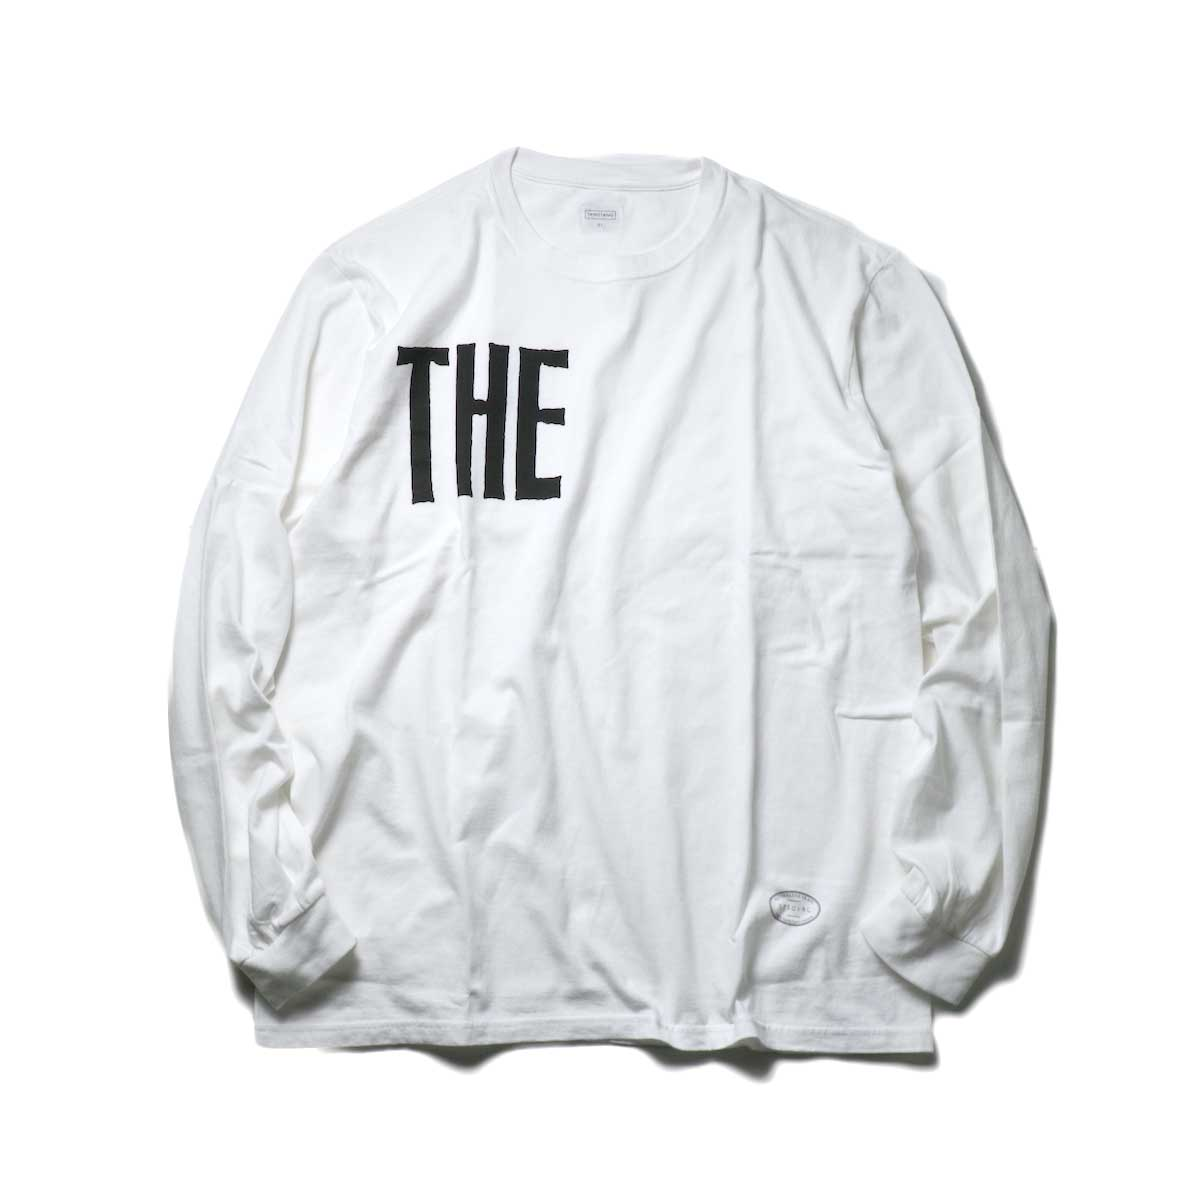 TANGTANG / ARCHIVE -THE- (White)正面